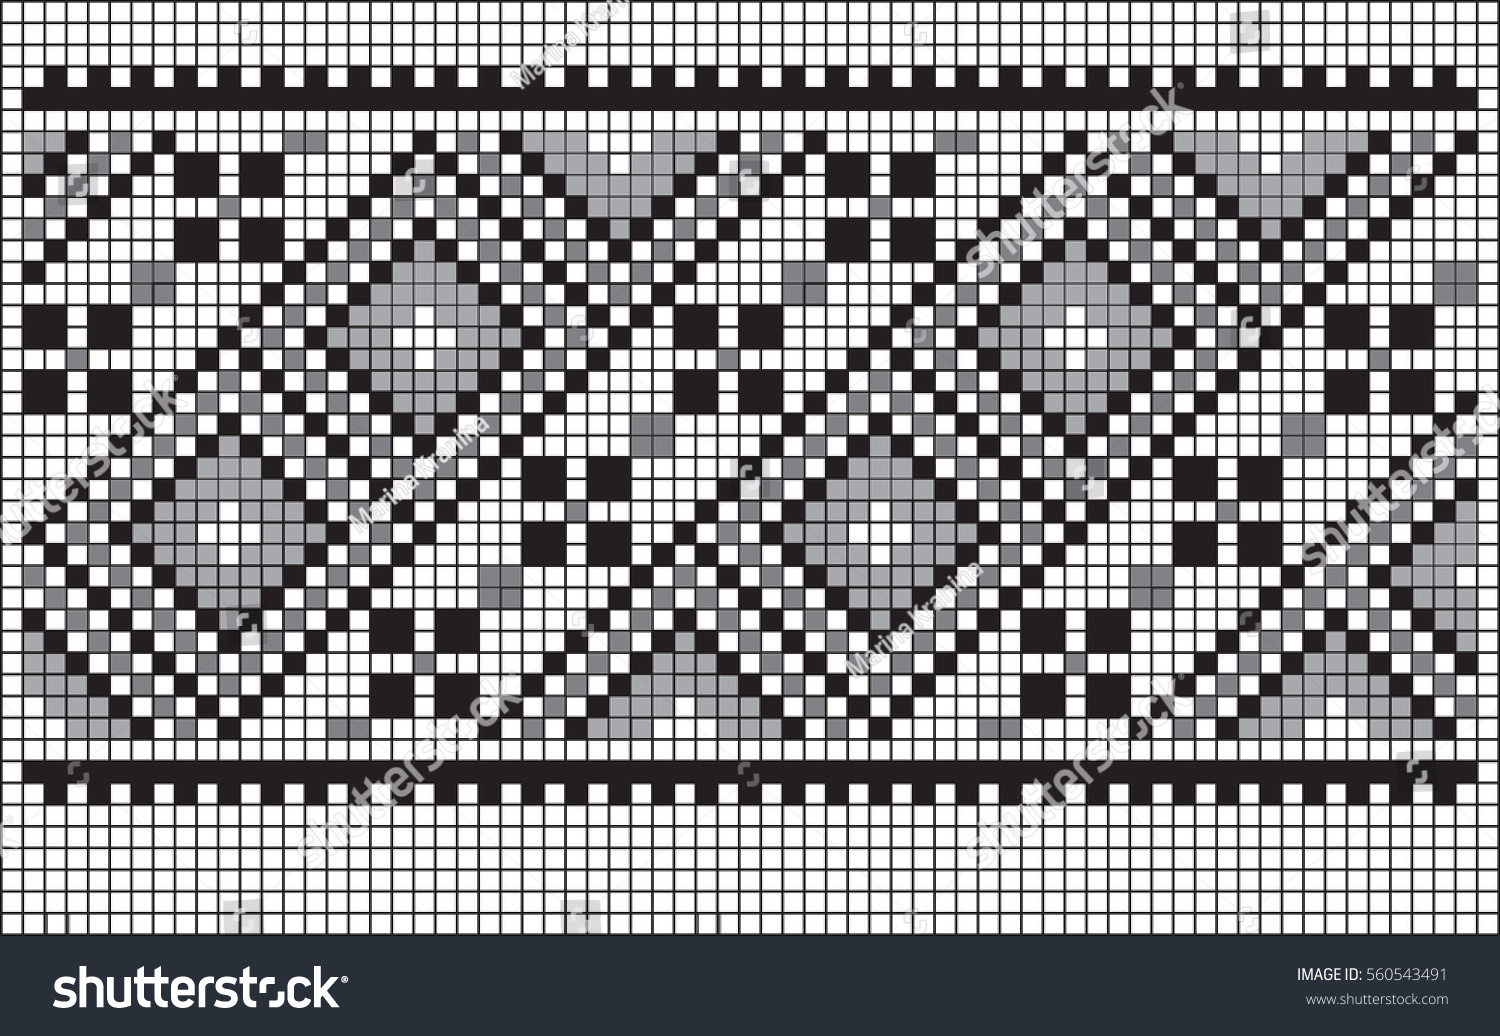 Geometric Patterns Embroidery Crochet Drawing On Stock Vector